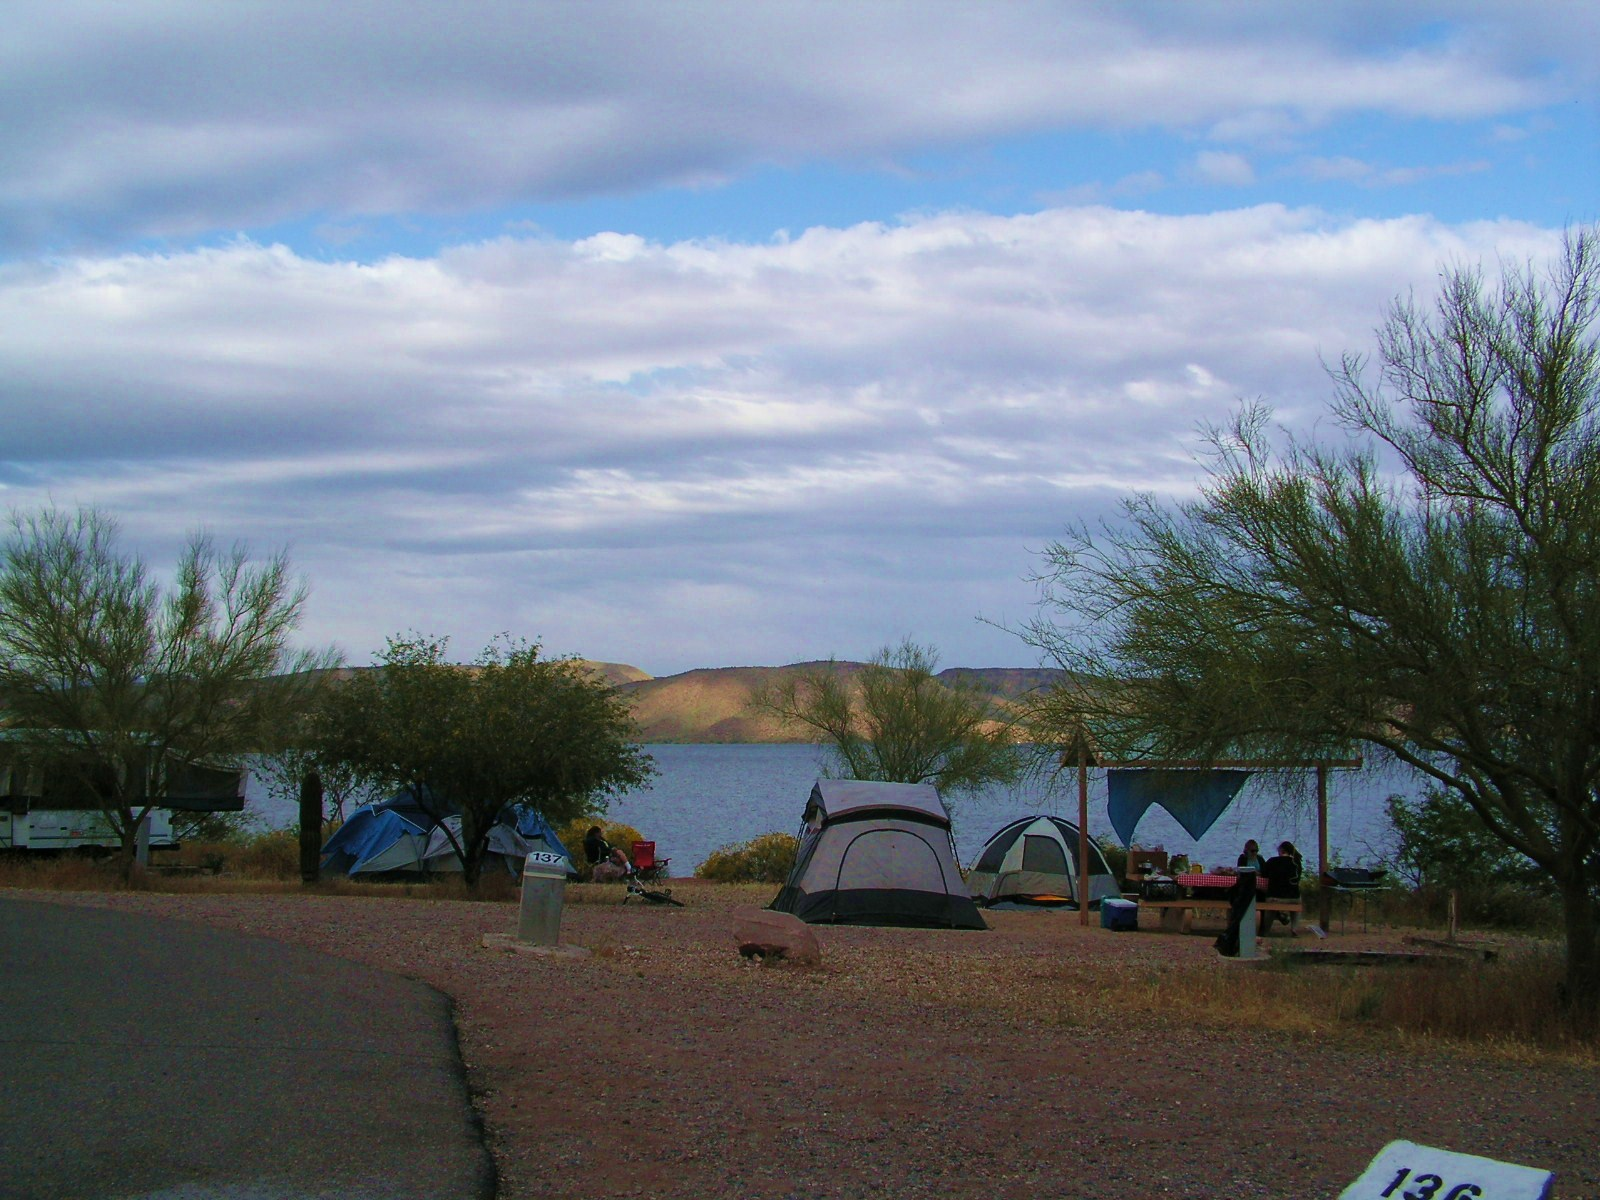 Camping Lake Pleasant Az http://mysistersjar.wordpress.com/2010/04/25/damping-camping-in-the-rain/